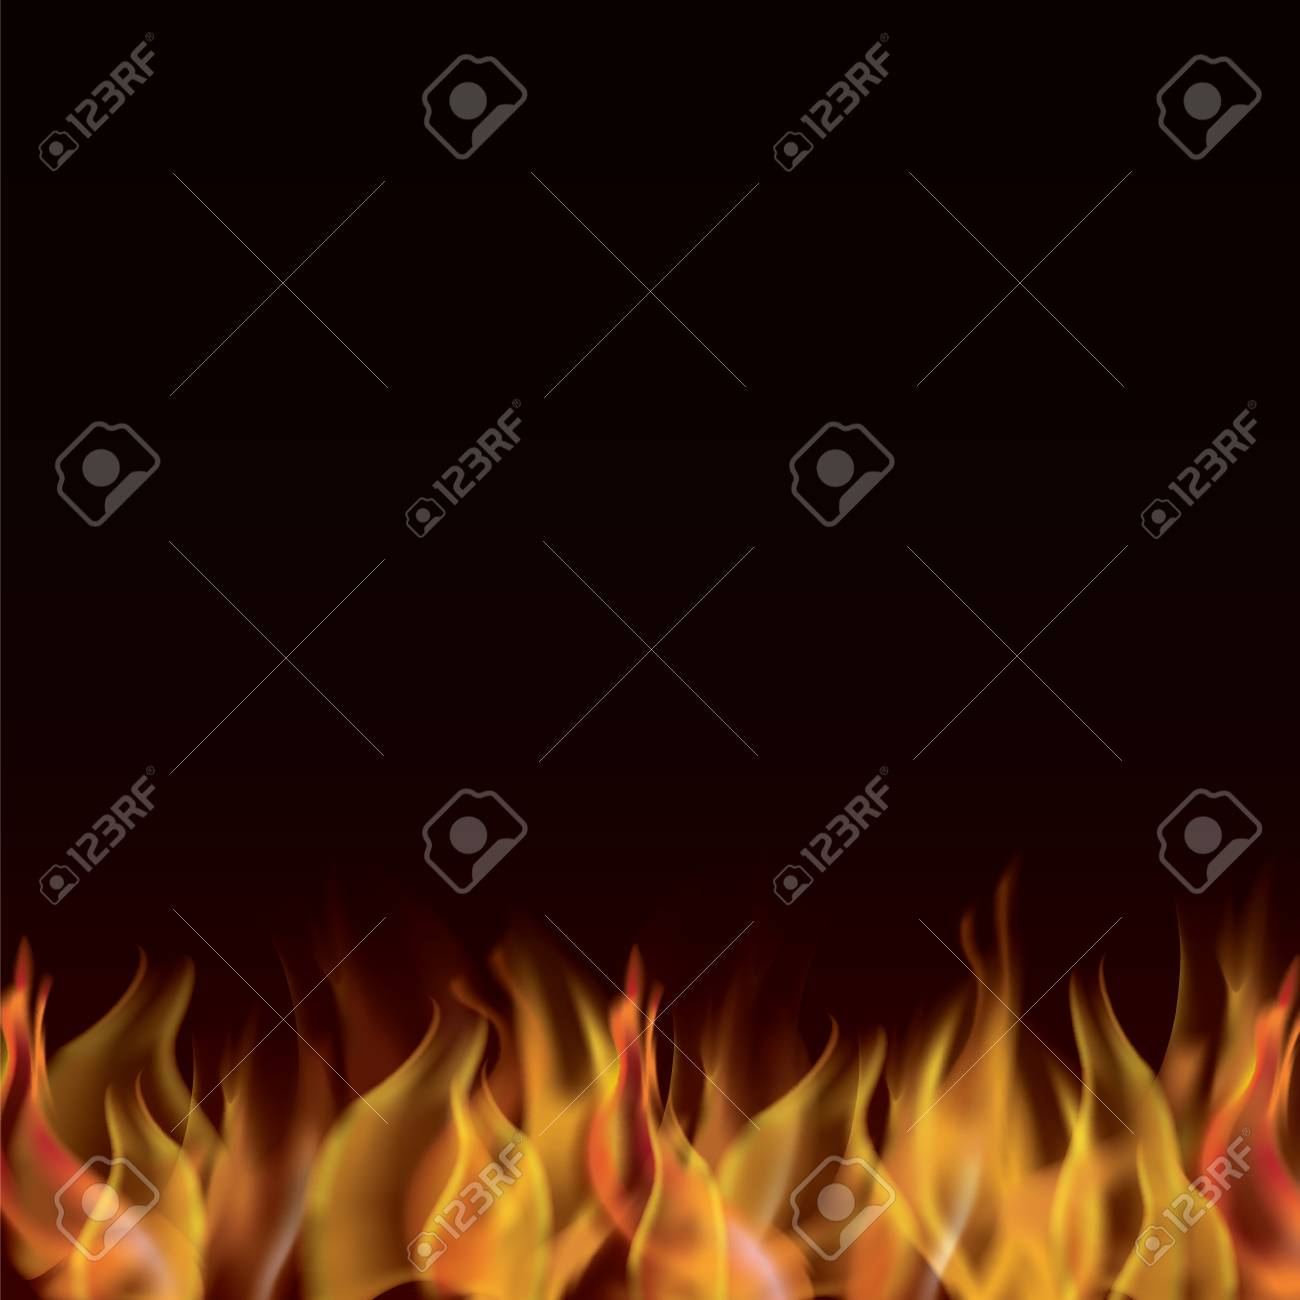 illustration of realistic fire flames backdrop which are copy